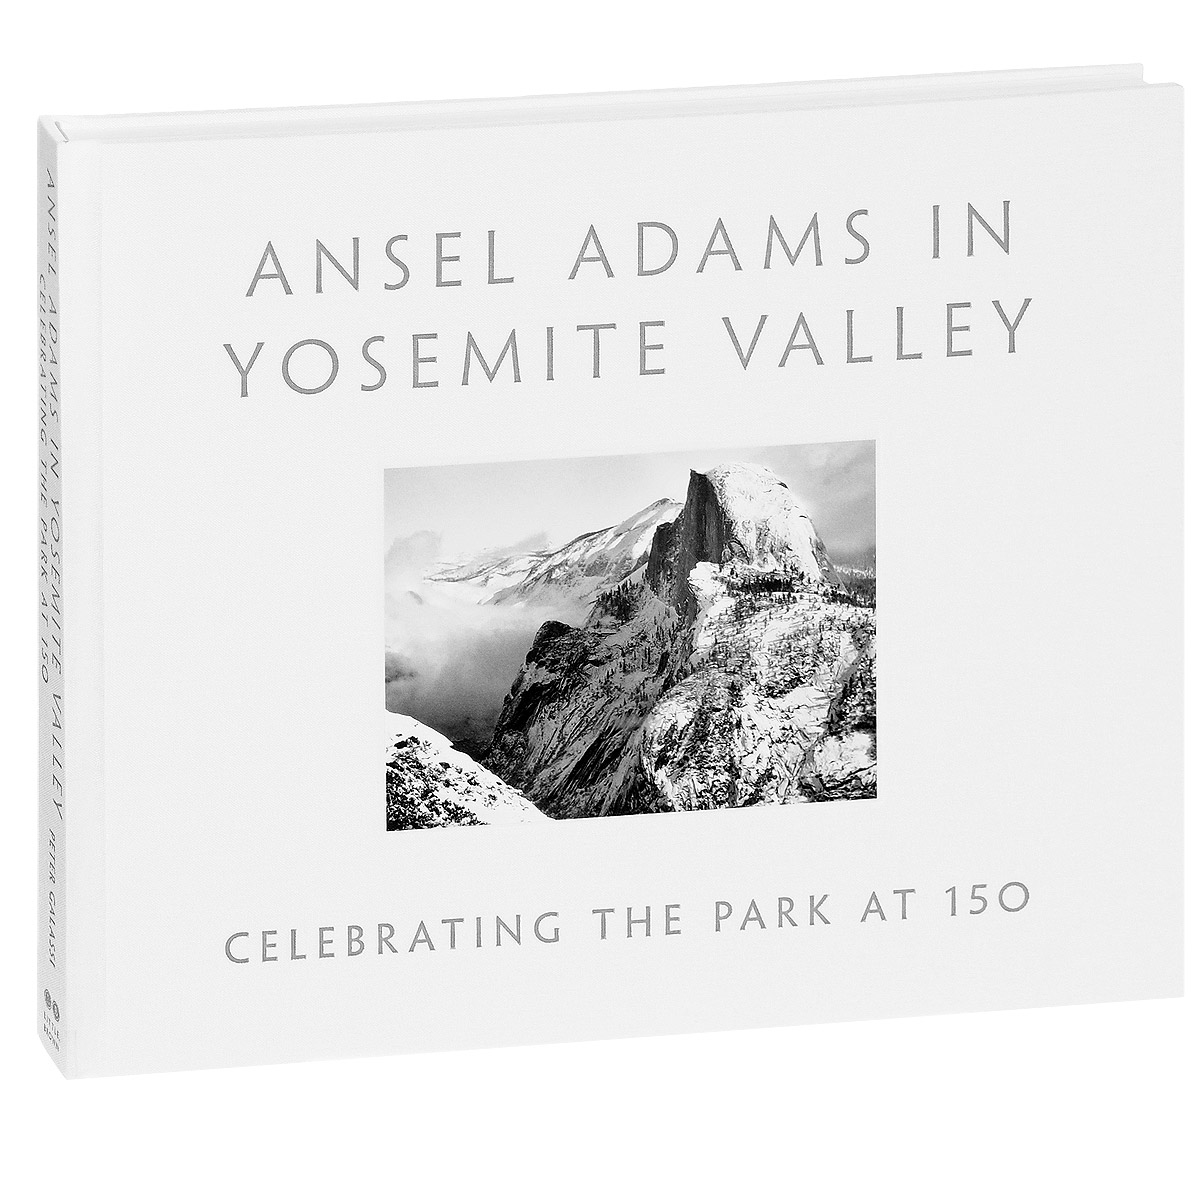 Ansel Adams in Yosemite Valley: Celebrating the Park at 150 aerosols climatology at mohal in kullu valley himachal pradesh india